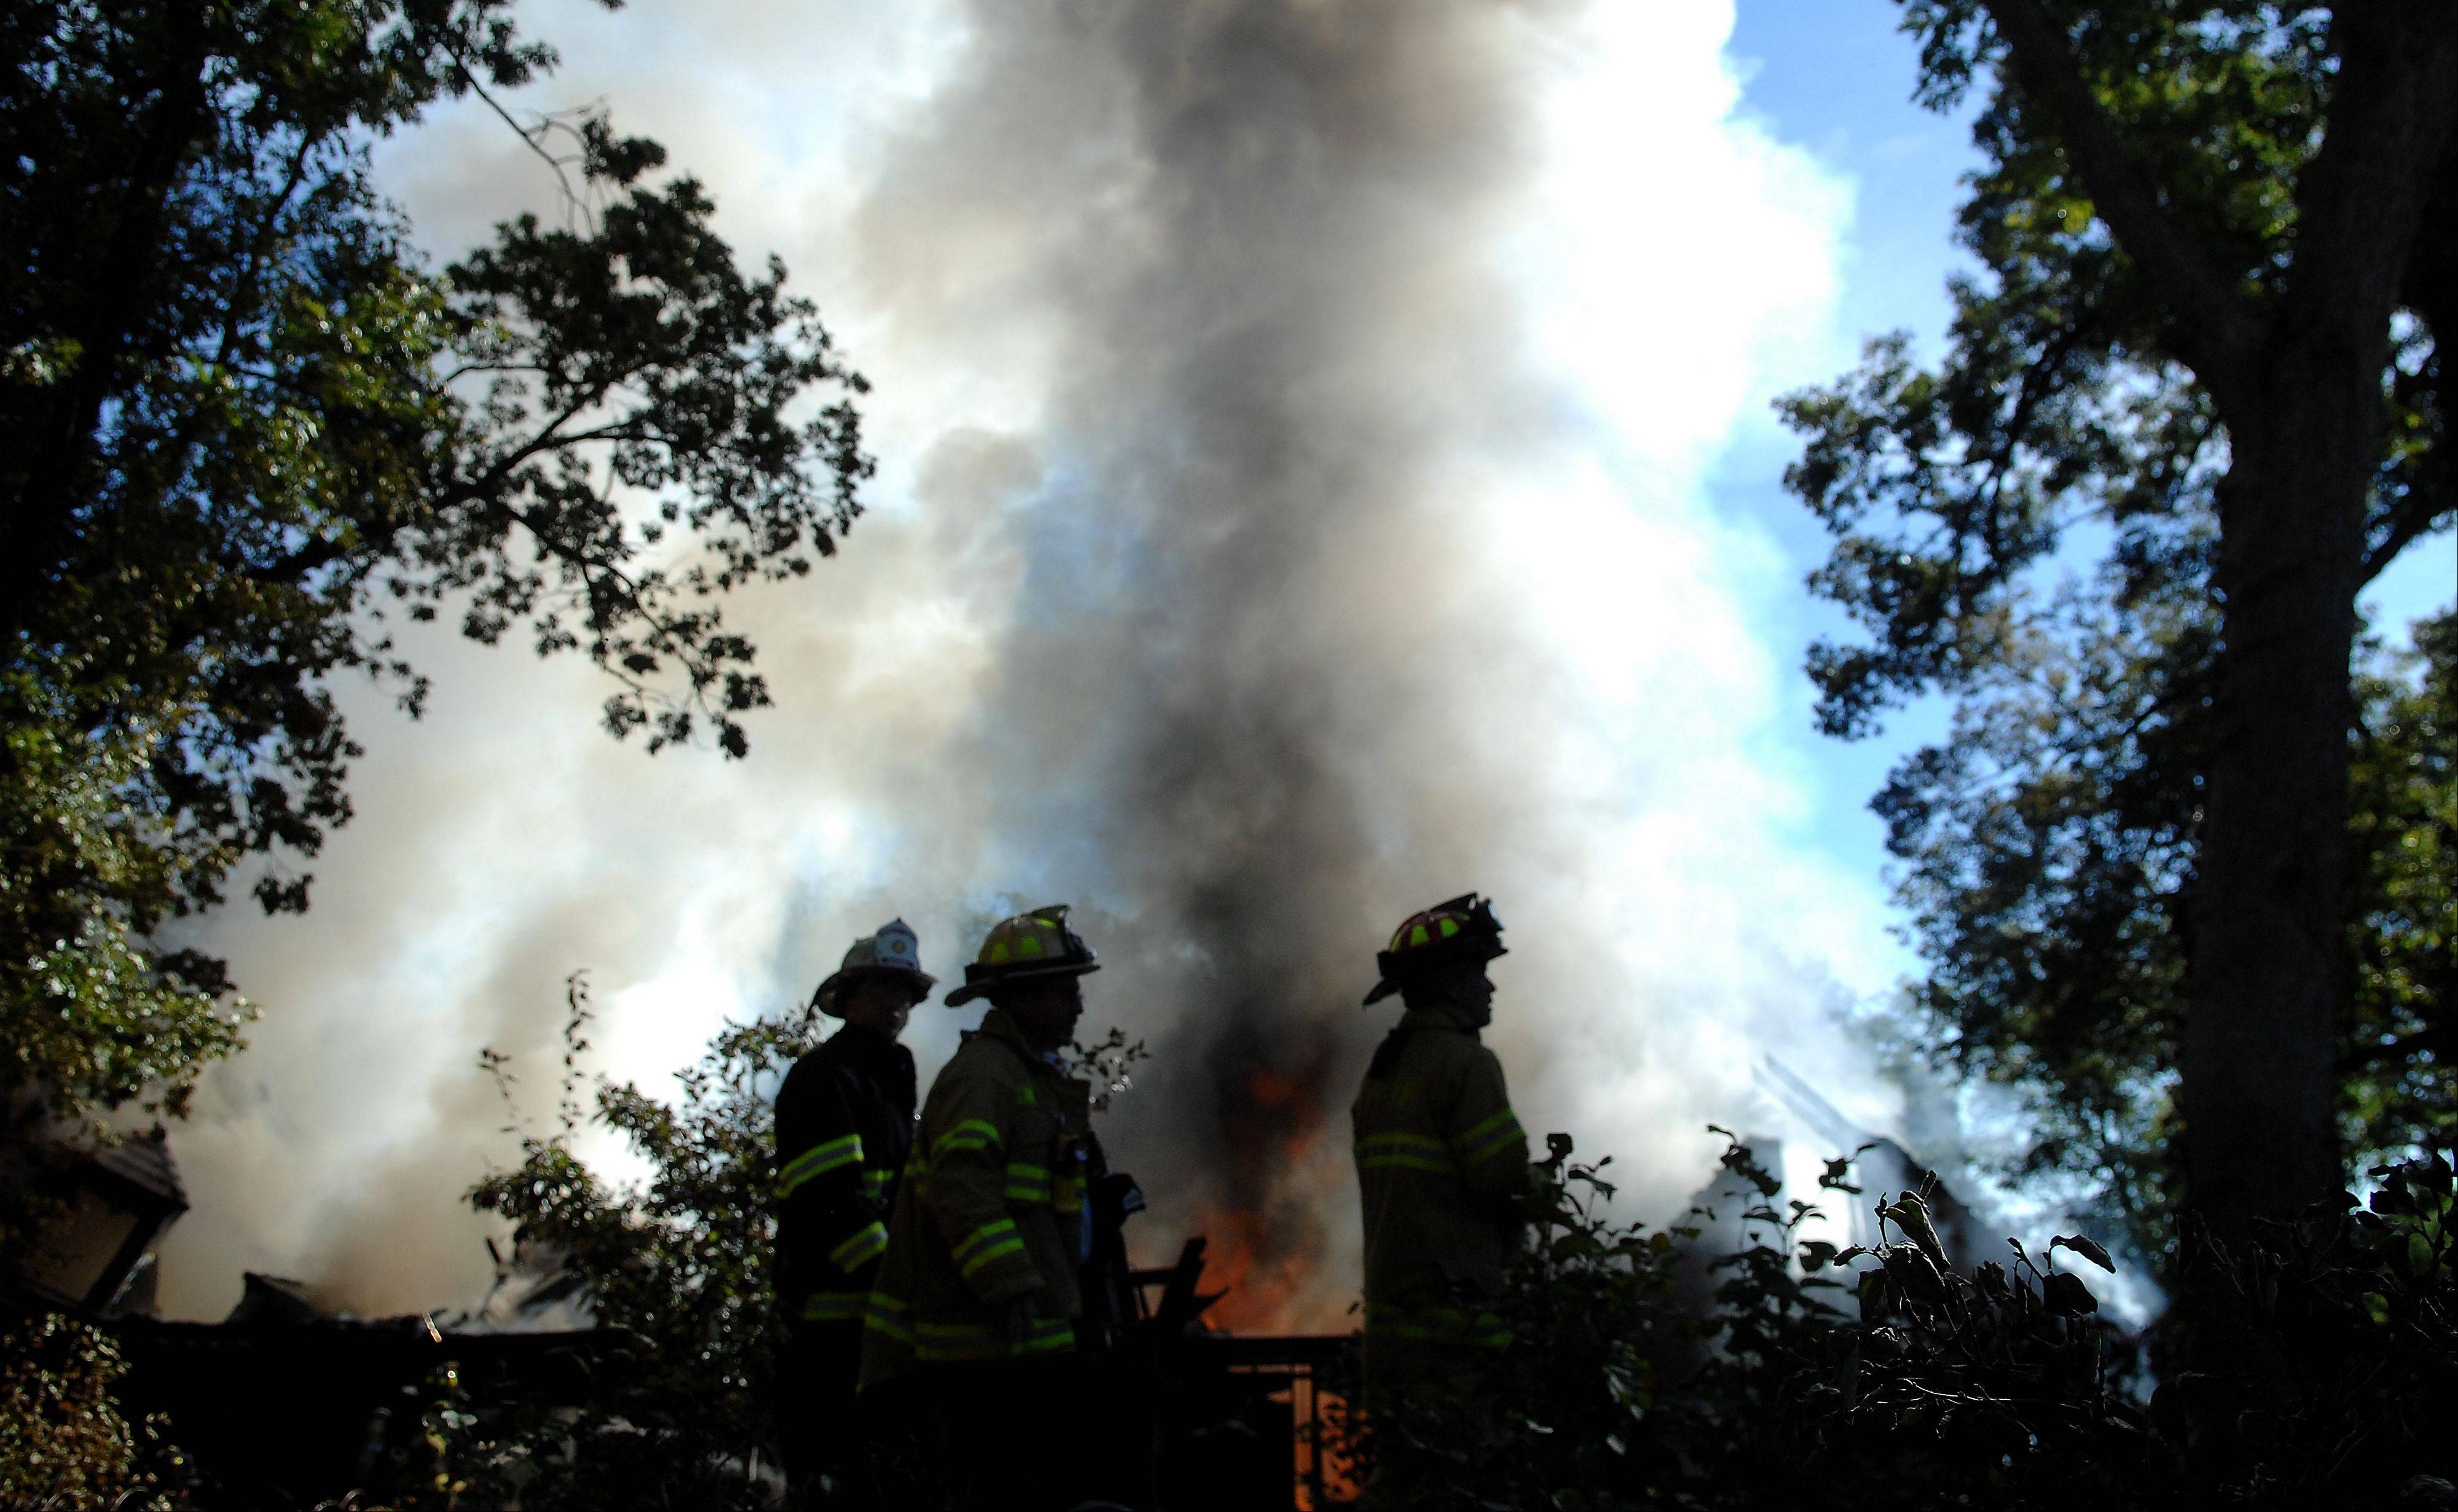 A house fire on Spring Wood Lane in Campton Hills started just before 9 a.m. Monday, according to fire officials.